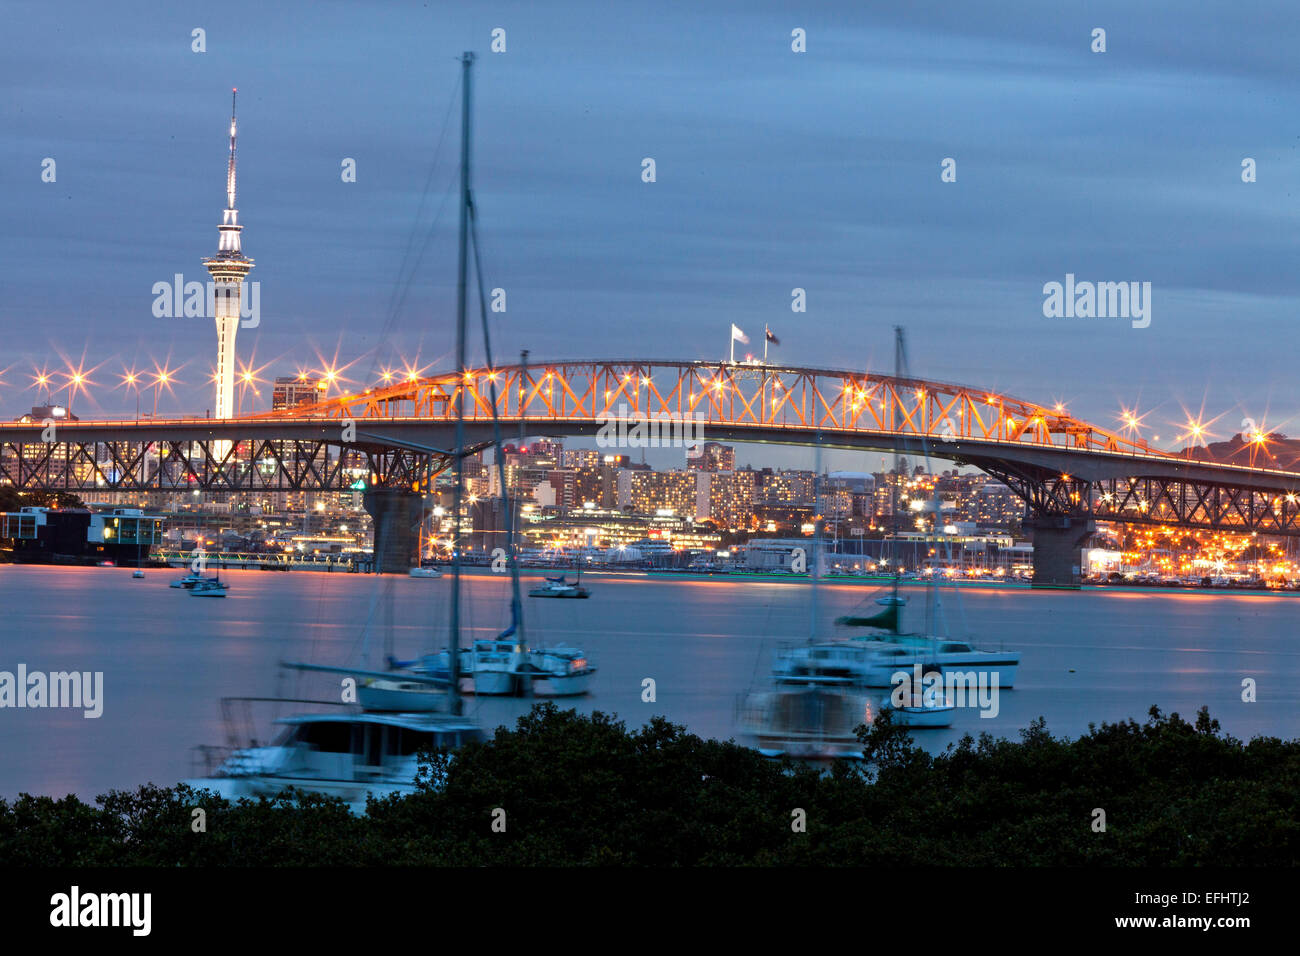 Auckland Harbour Bridge and skyline in the evening, harbour with sailing boats, Auckland, North Island, New Zealand - Stock Image